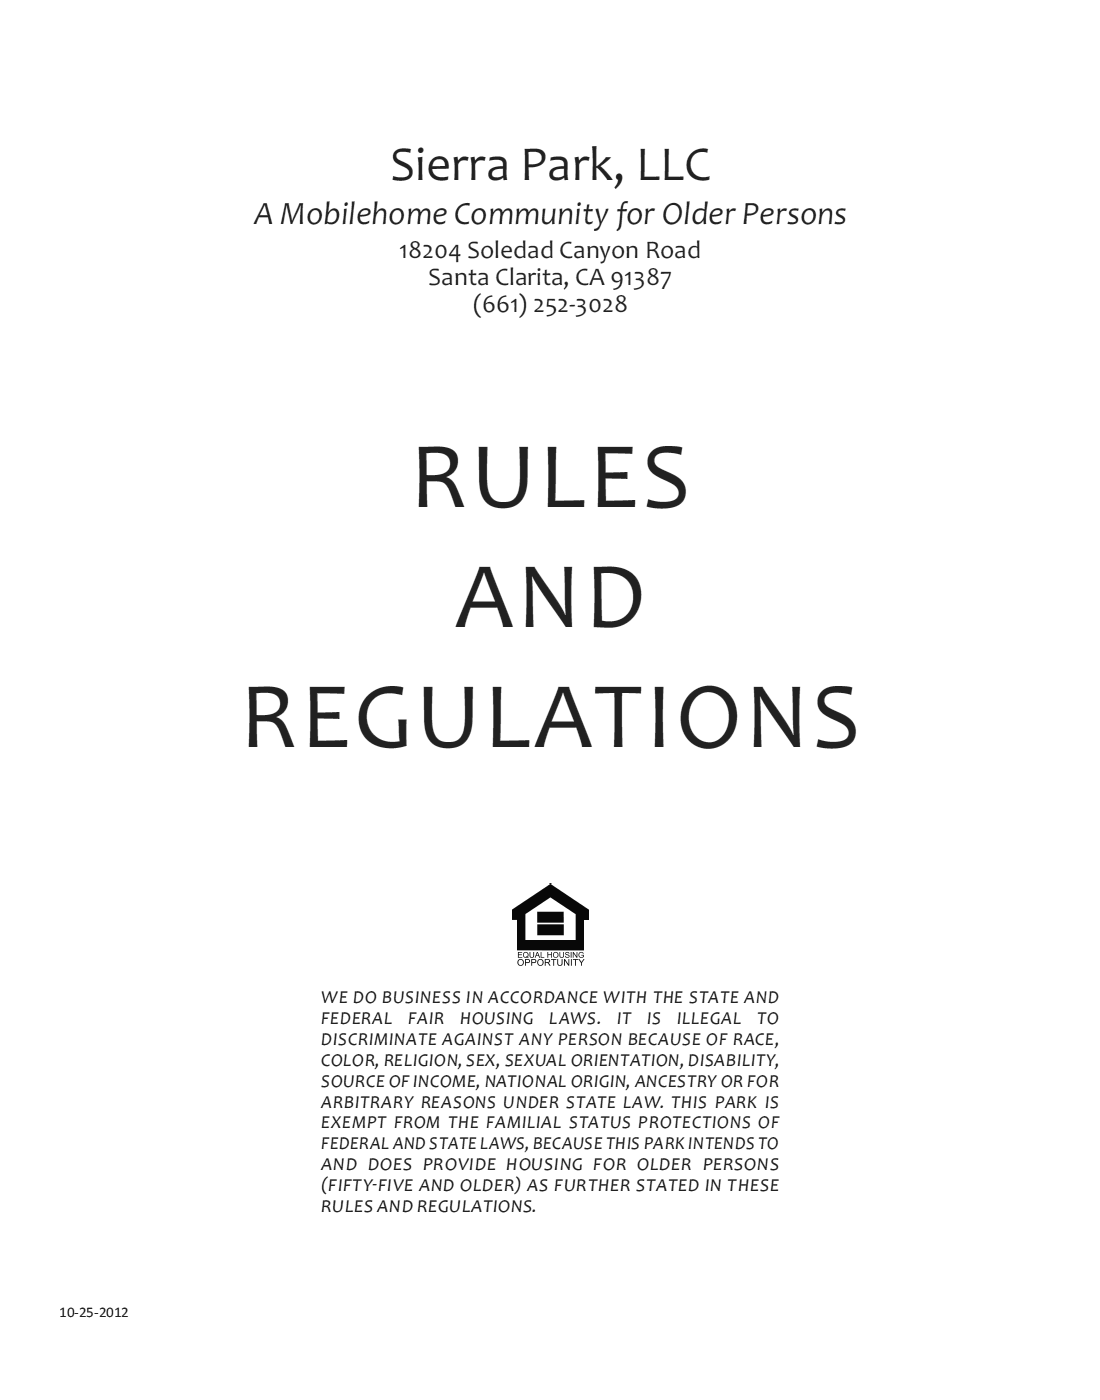 2012-10-25 - Sierra Park Rules and Regulations Cover Page